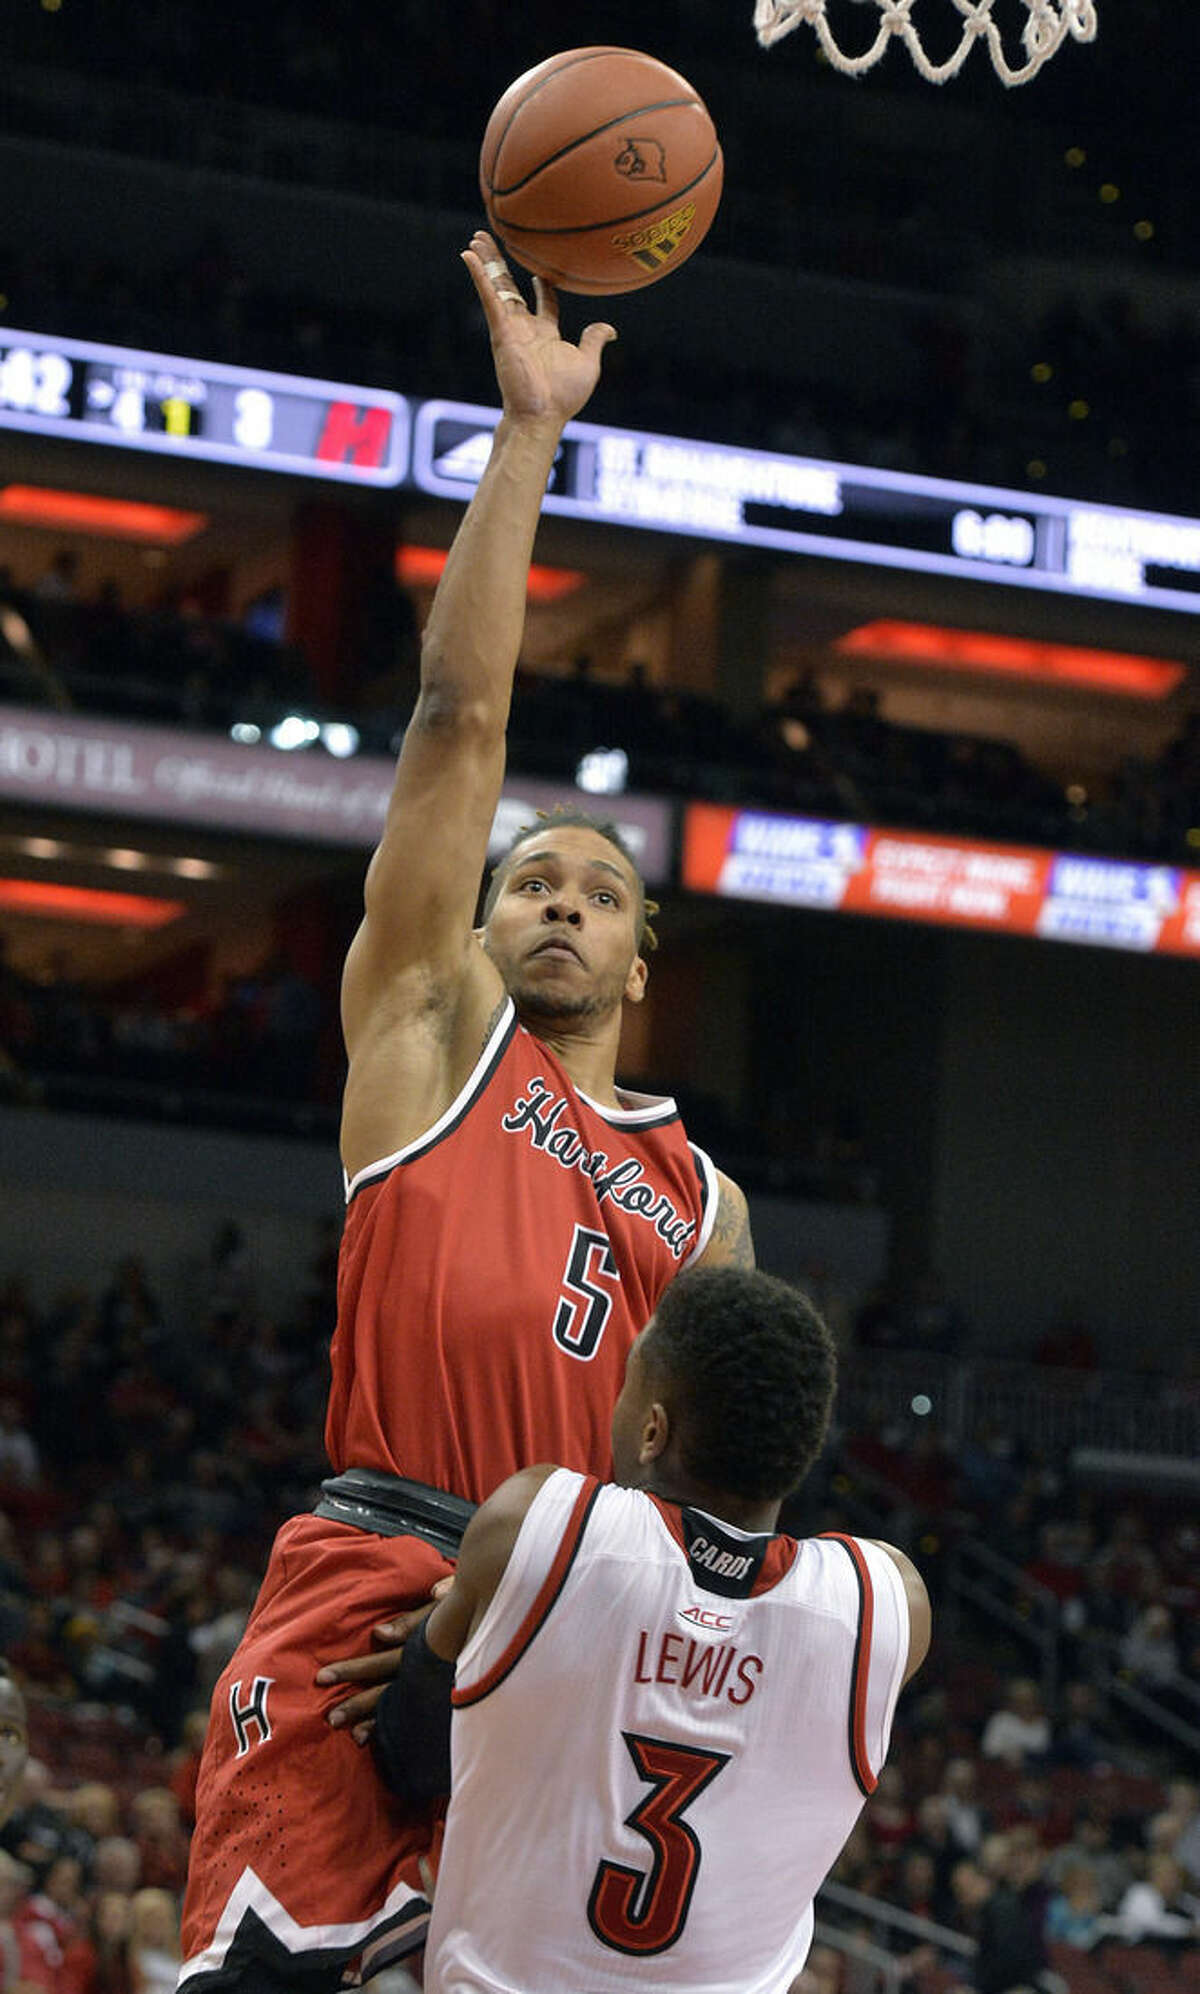 Hartford's Pancake Thomas (5) puts a shot up over the defense of Louisville's Trey Lewis (3) during the first half of an NCAA college basketball game, Tuesday, Nov. 17, 2015, in Louisville, Ky. (AP Photo/Timothy D. Easley)